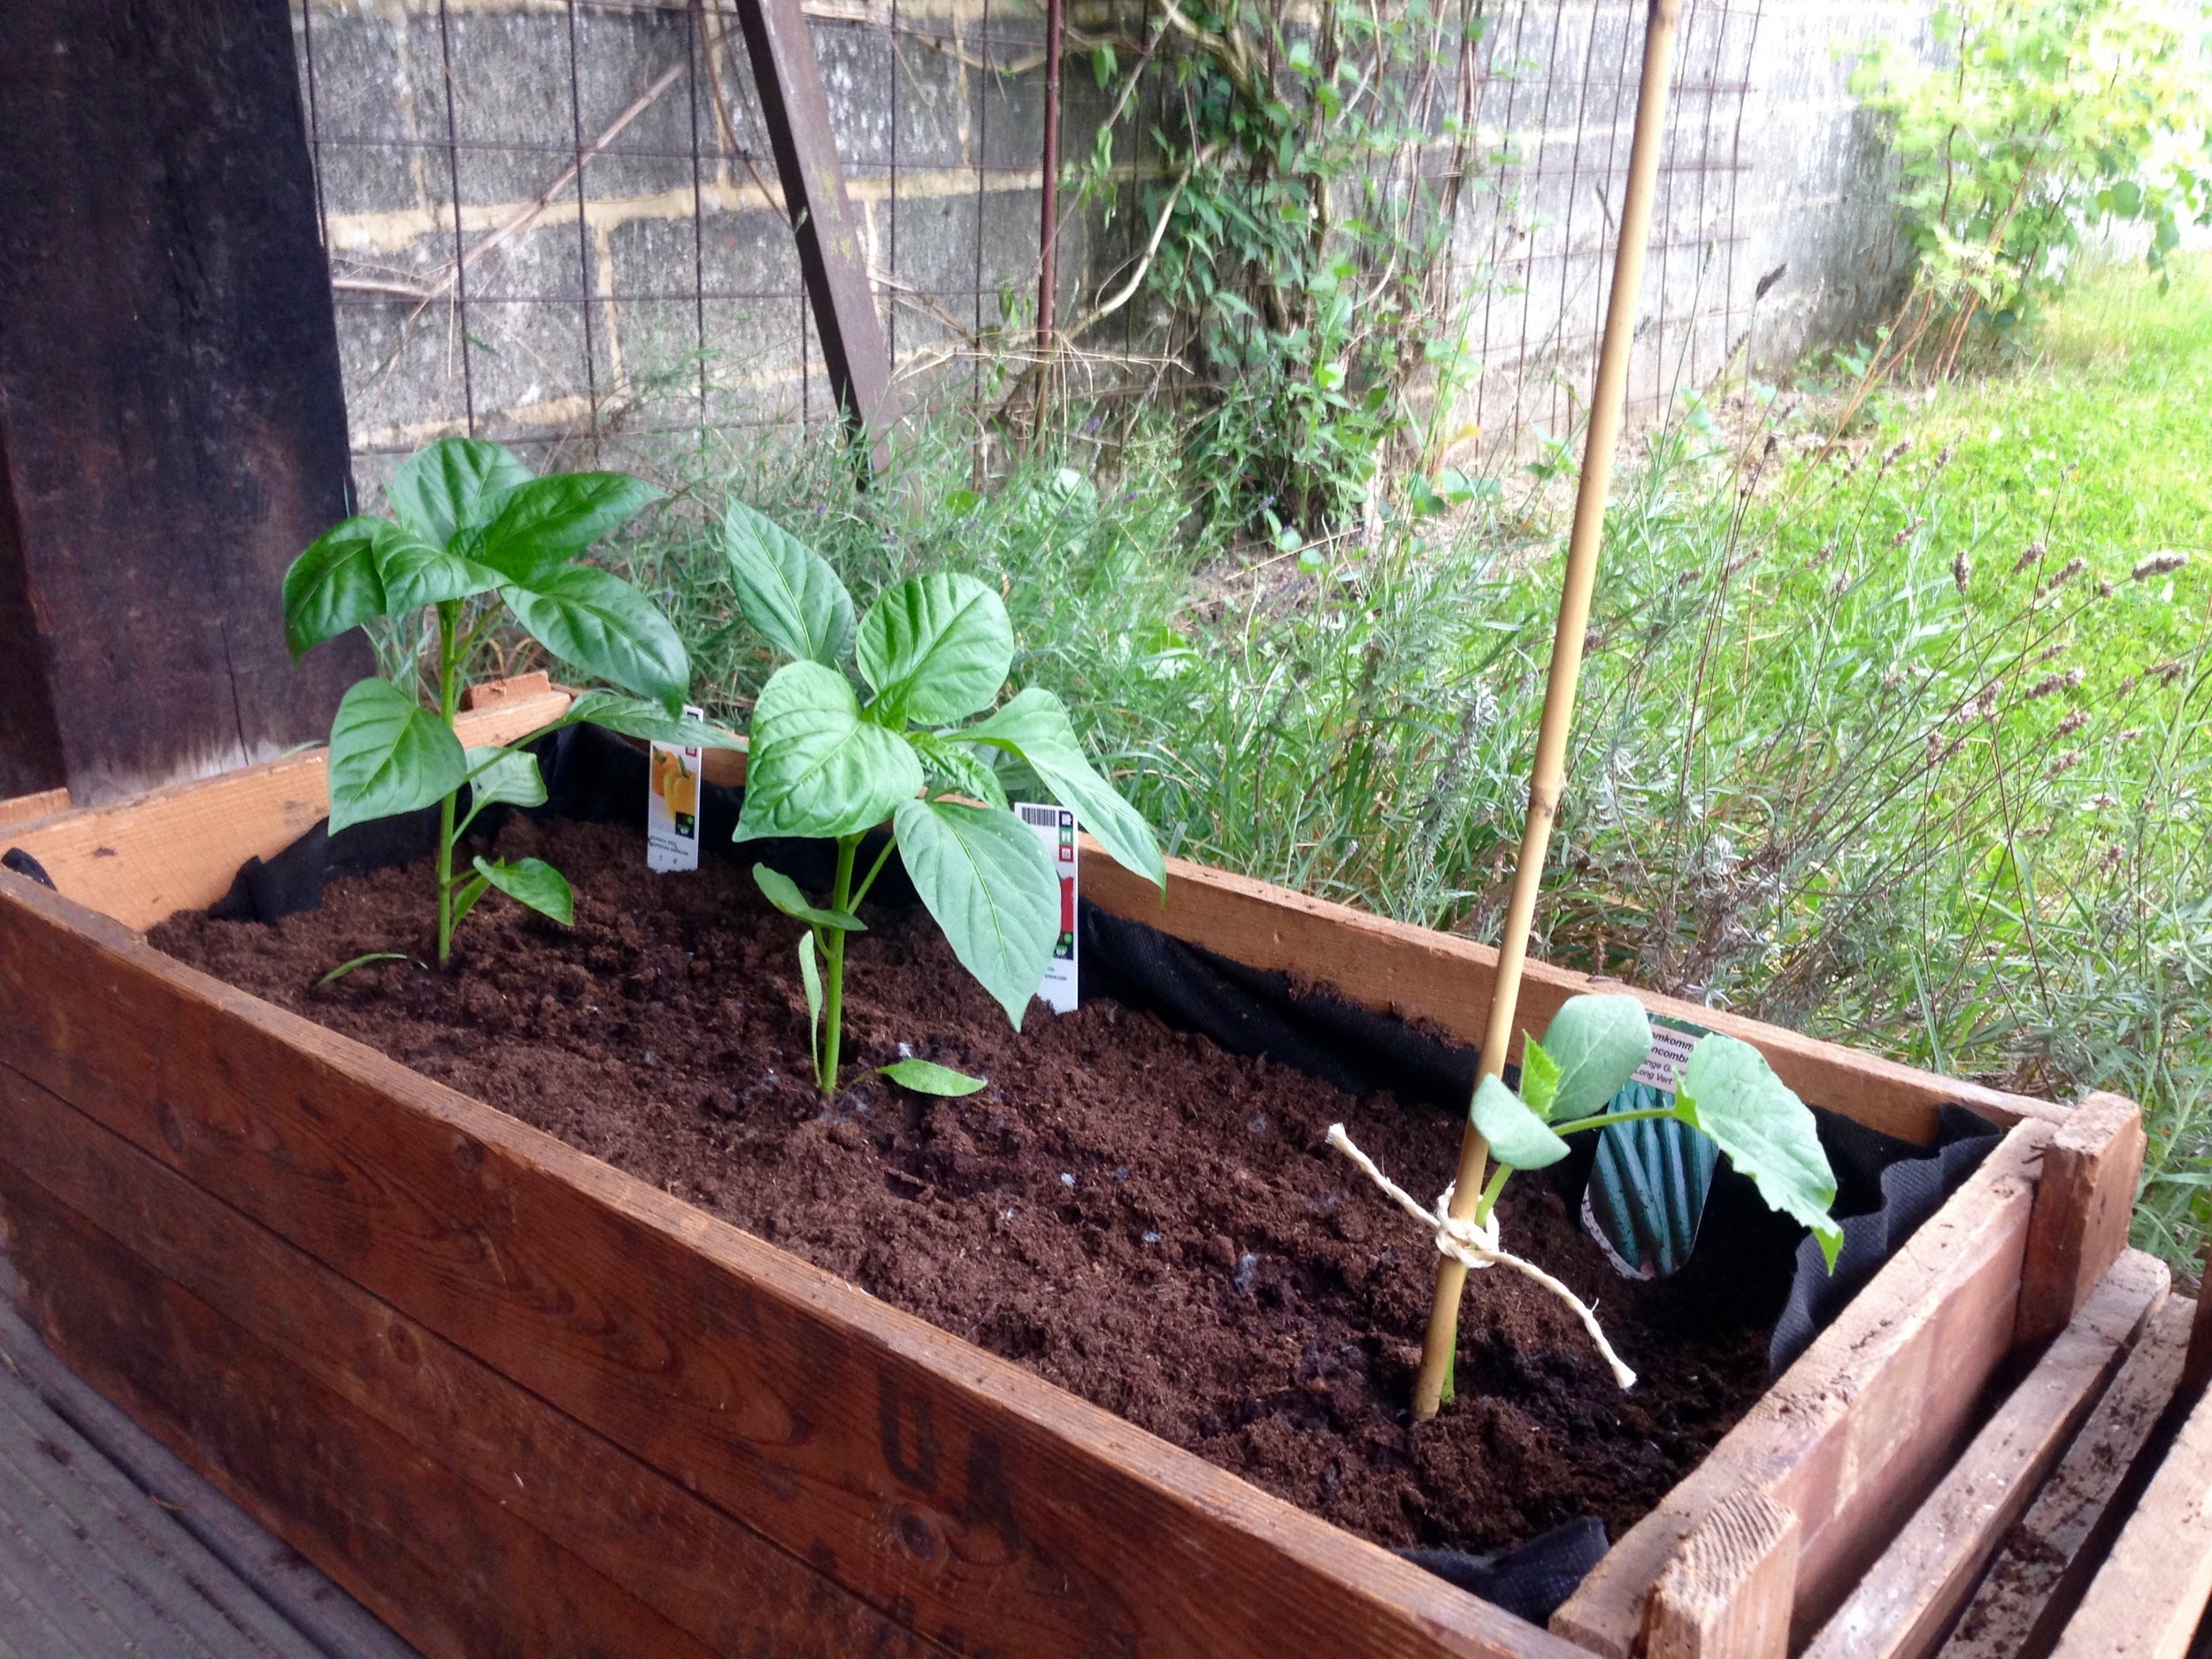 Red & yellow peppers plus cucumber planted in old, inherited wooden containers.